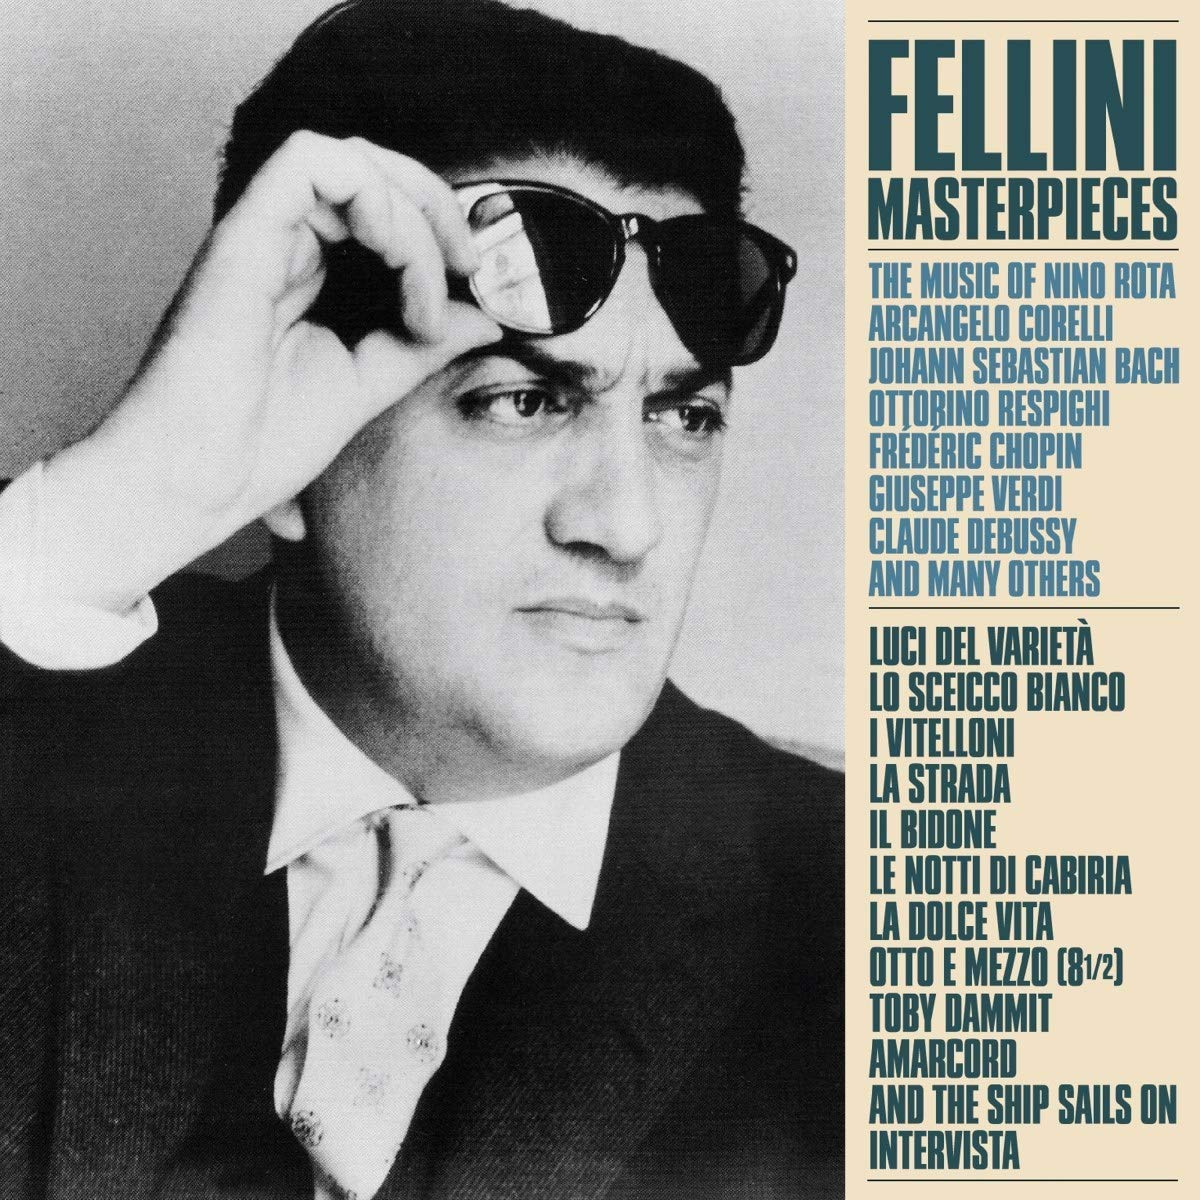 Fellini Masterpieces